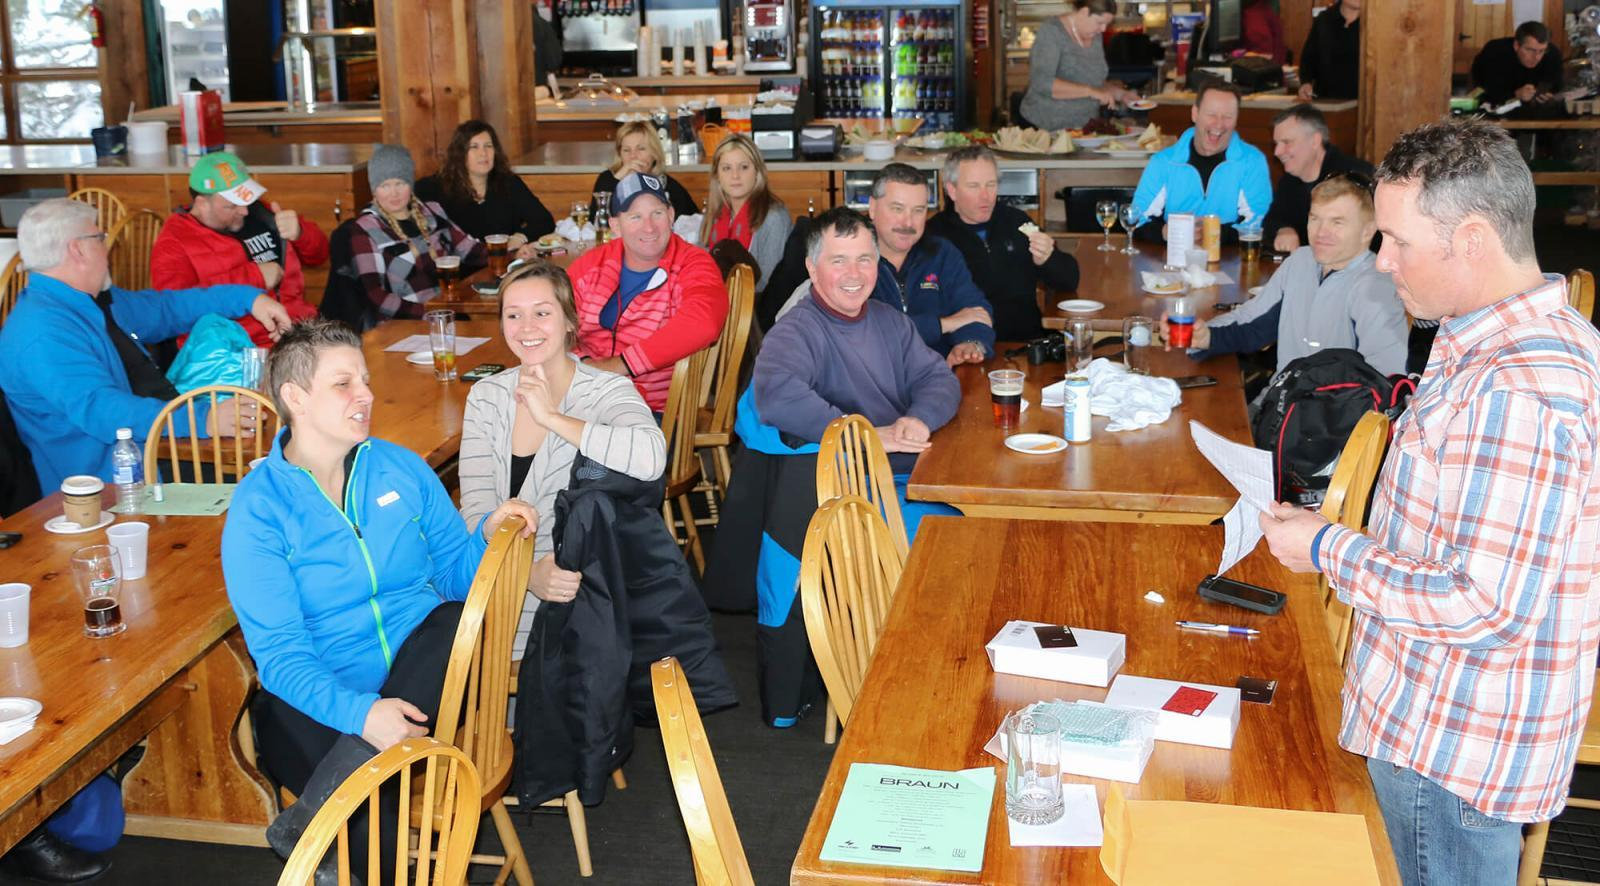 Prizes were awarded during the après ski at Osler.